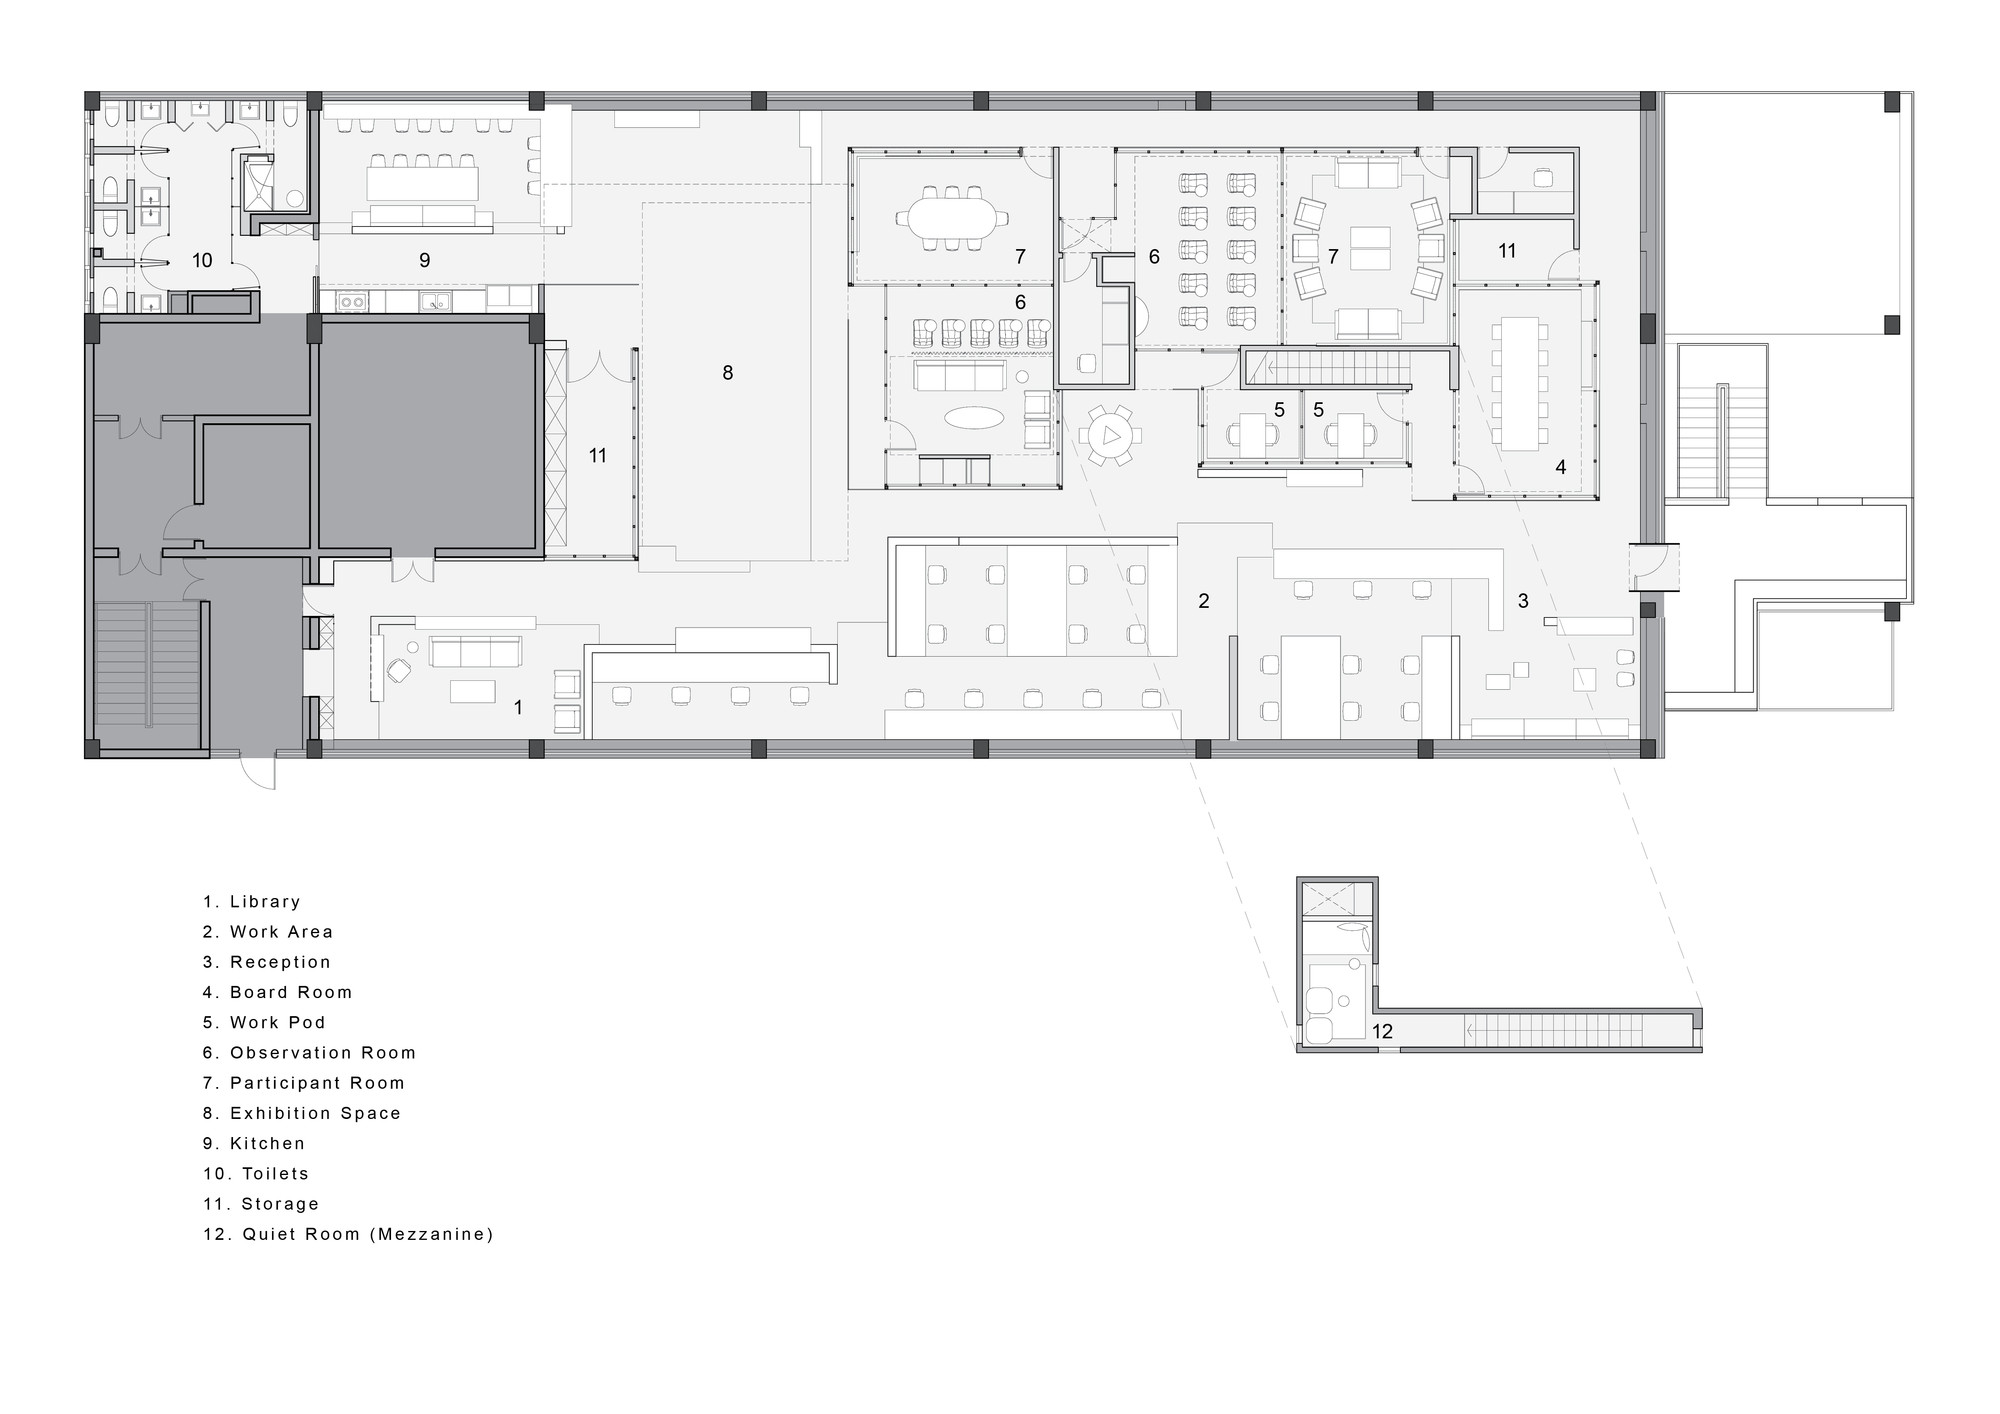 office floor plan design. flamingo shanghai office neri u0026 hu design and research 16 23 floor plan